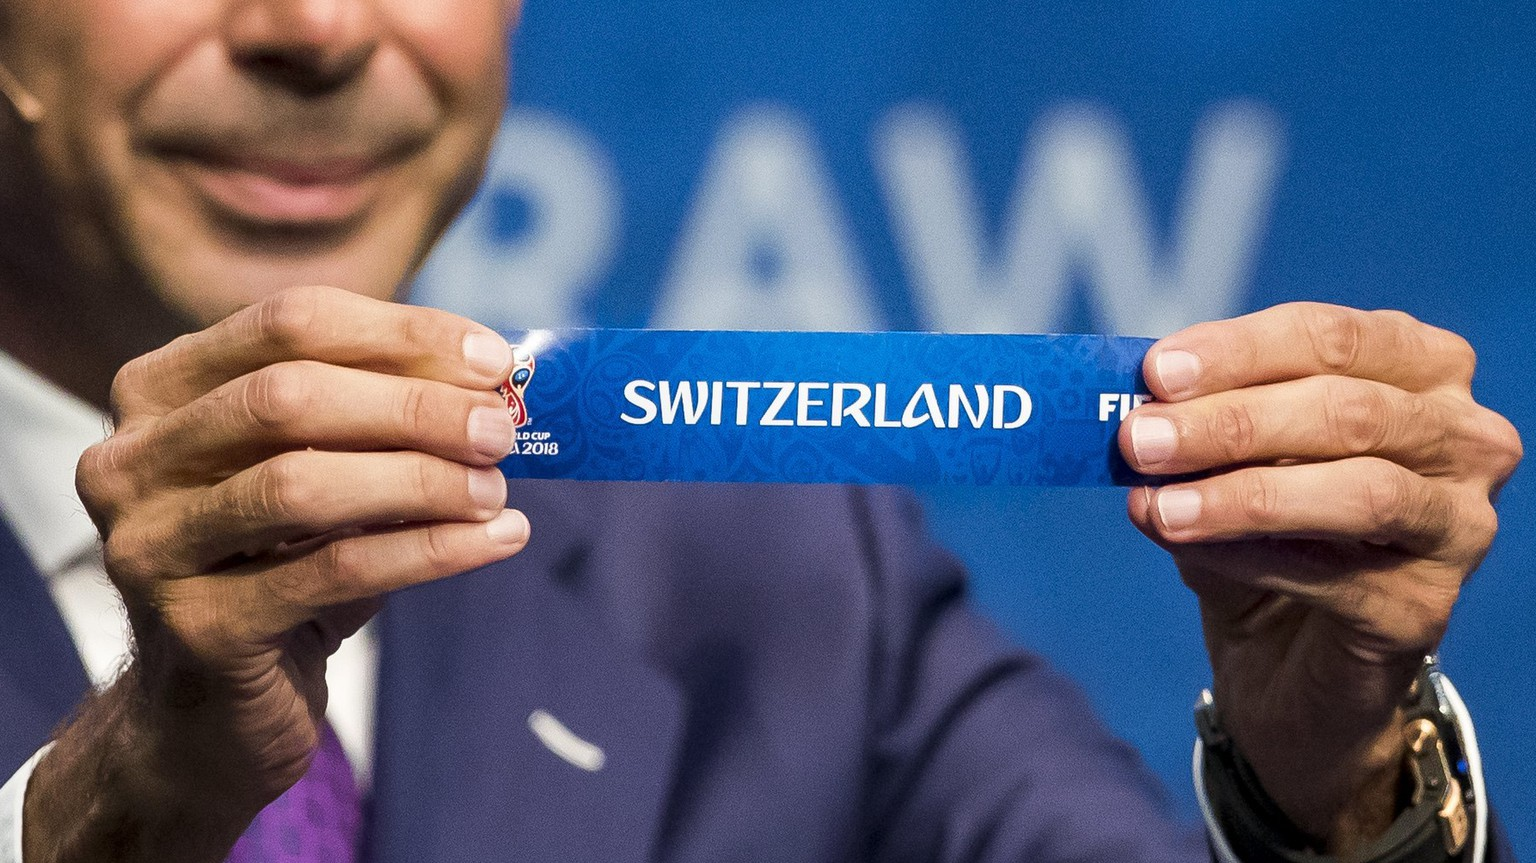 epa06271052 Spanish former soccer player Fernando Hierro shows the lot of Switzerland during the 2018 FIFA World Cup European Play-off draw at the FIFA headquarter in Zuerich, Switzerland, 17 October 2017.  EPA/CHRISTIAN MERZ